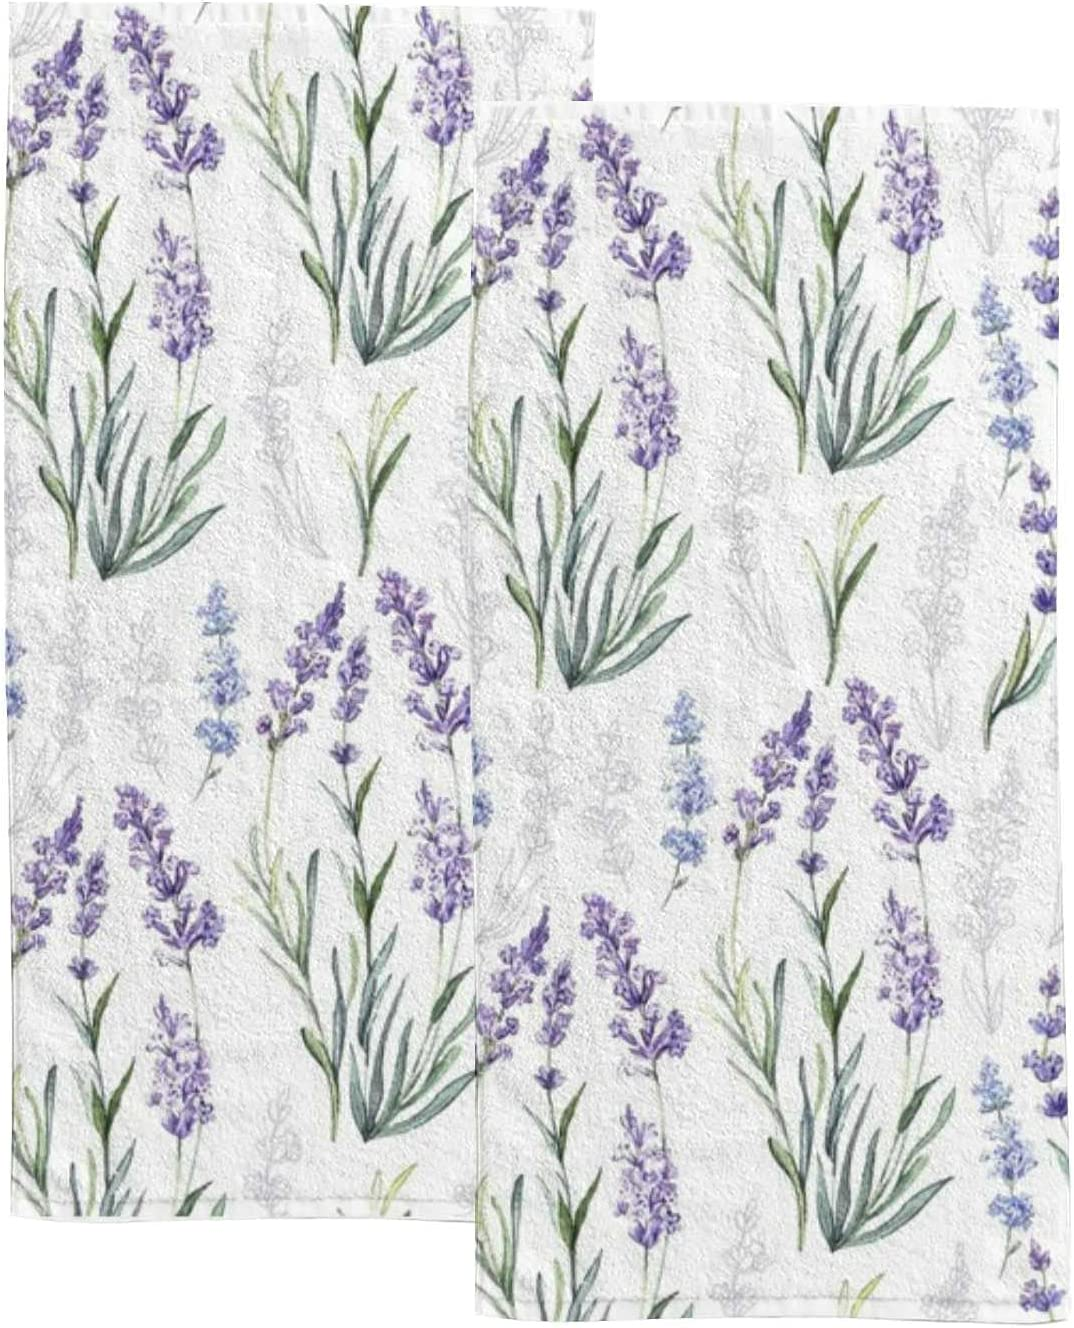 Light Purple Flowers Hand Quantity limited Towels Set 2021 spring and summer new Kitchen Towe 2 Bathroom for